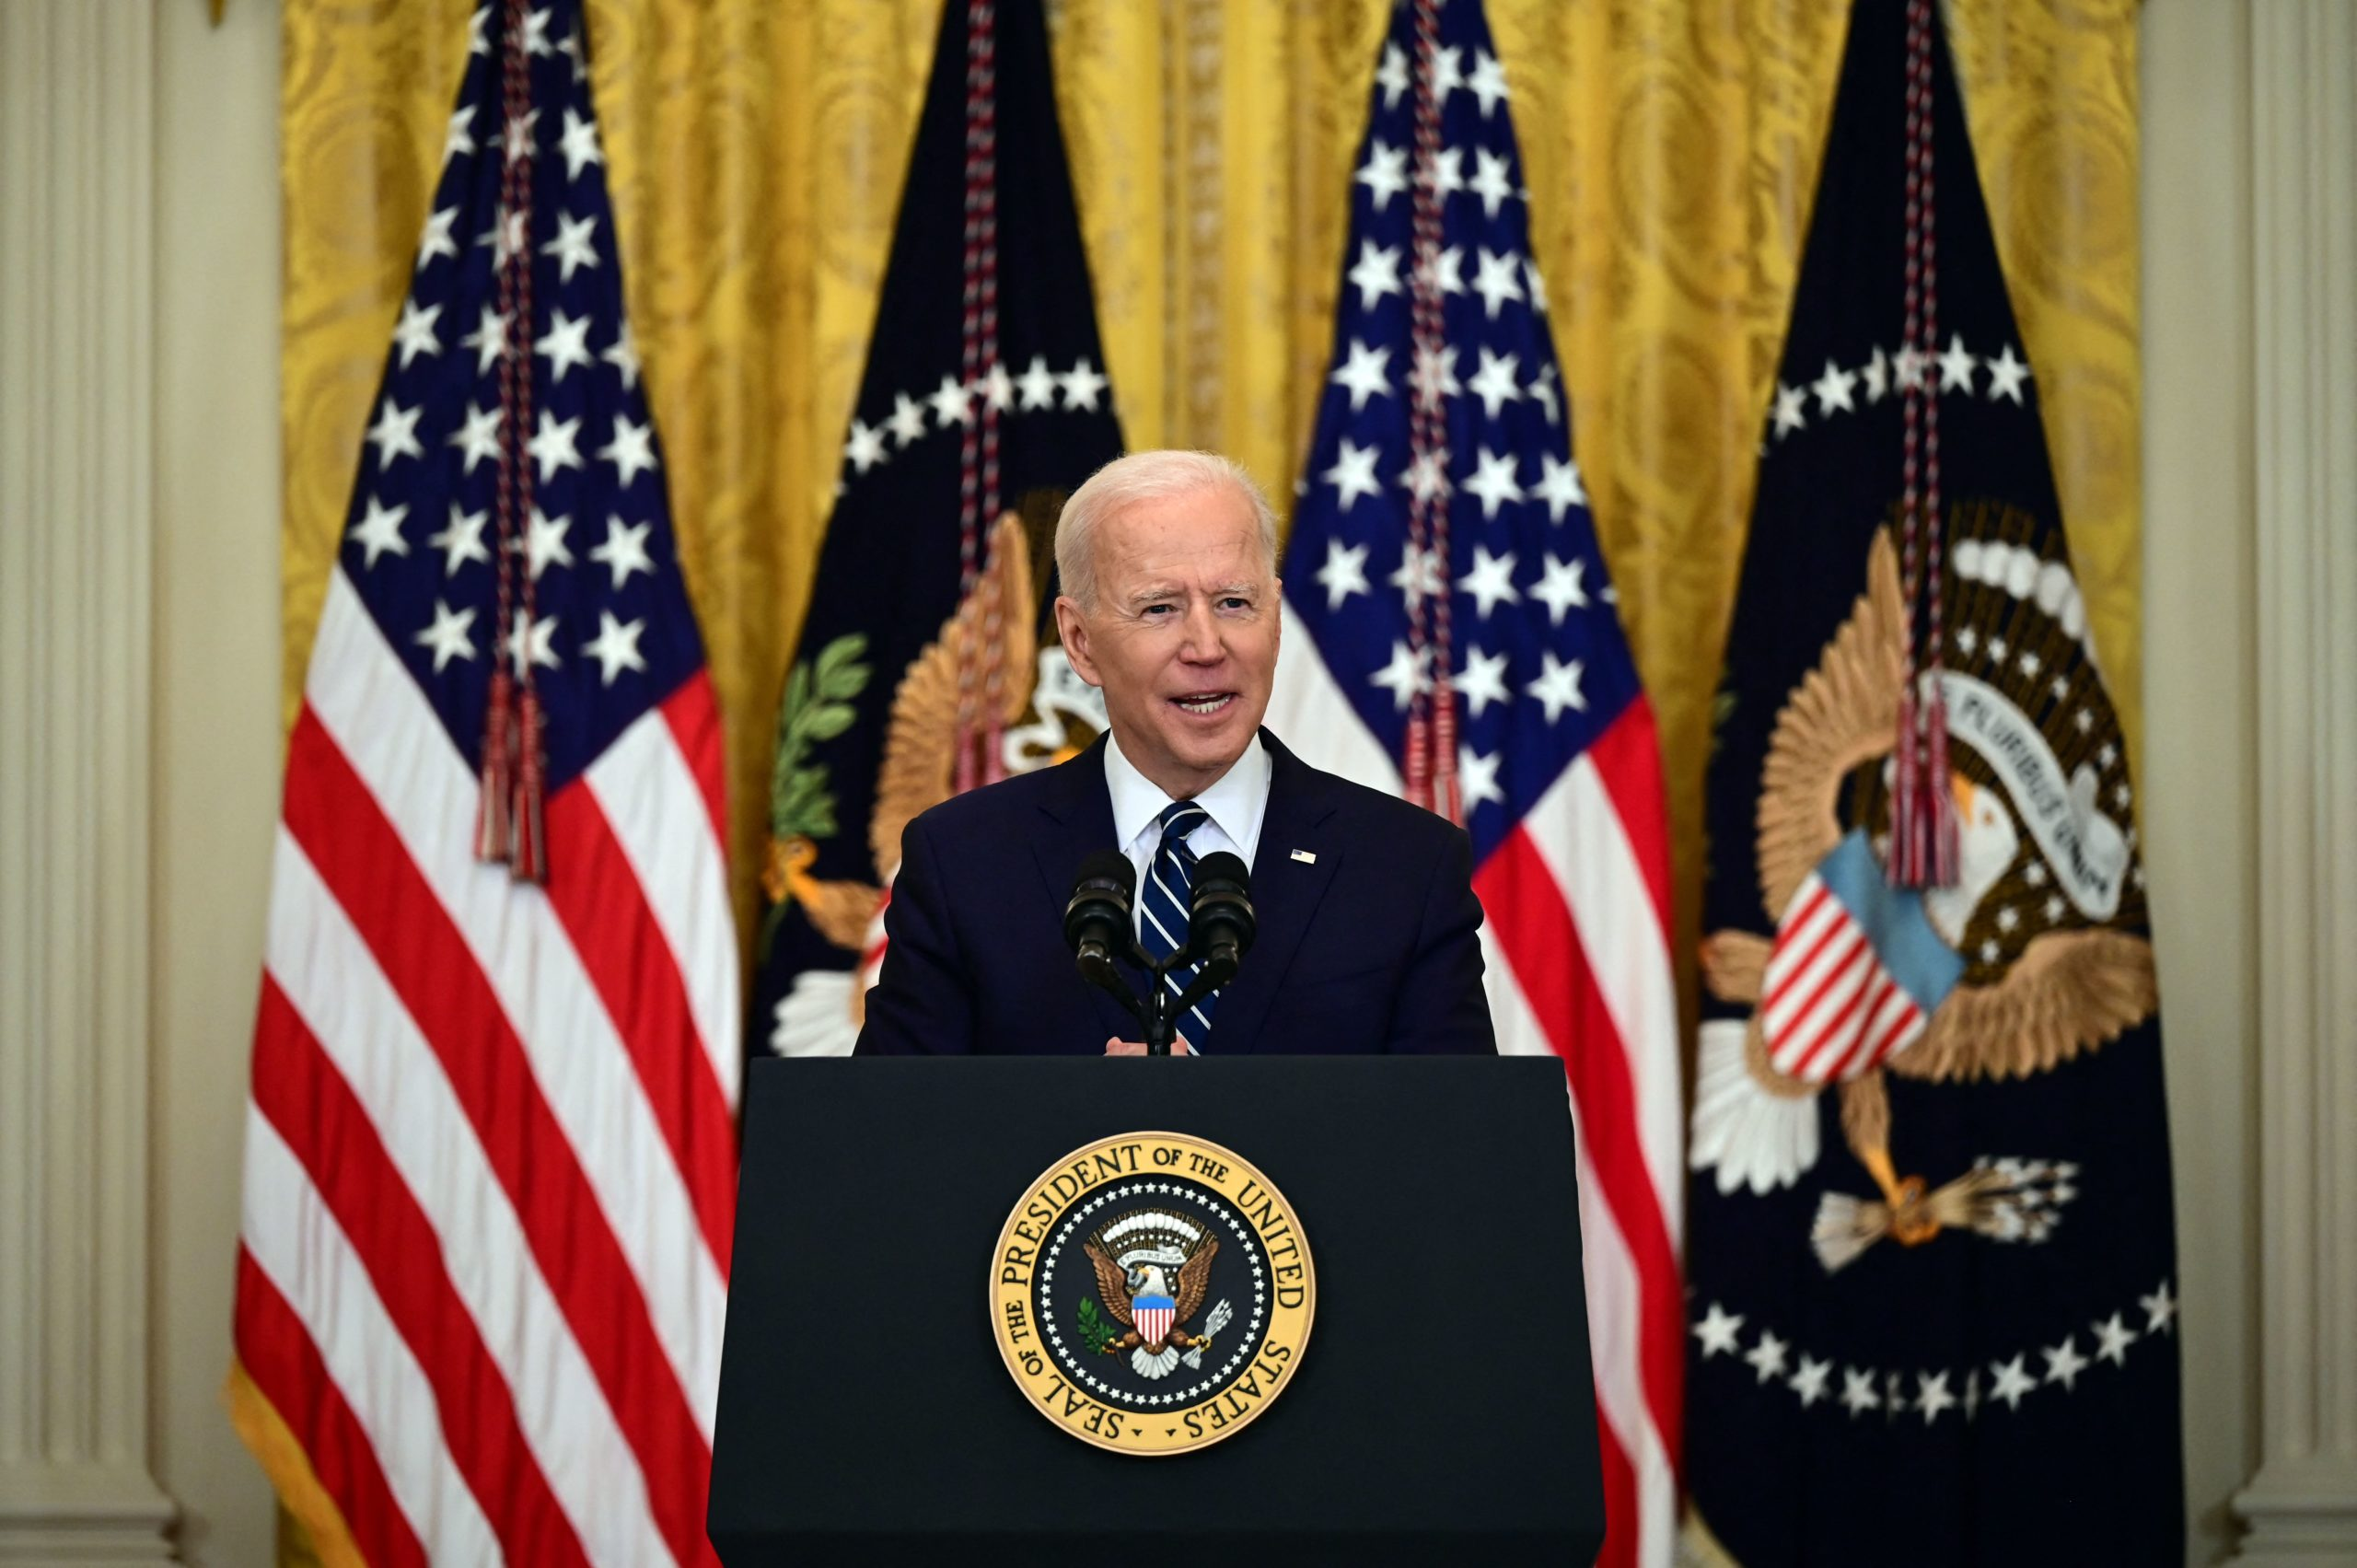 US President Joe Biden answers a question during his first press briefing in the East Room of the White House in Washington, DC, on March 25, 2021. - Biden pushed back Thursday at claims the flow of undocumented immigrants at the US southern border has reached crisis levels, saying the surge is a mostly seasonal problem that happens each year. (Photo by JIM WATSON / AFP) (Photo by JIM WATSON/AFP via Getty Images)